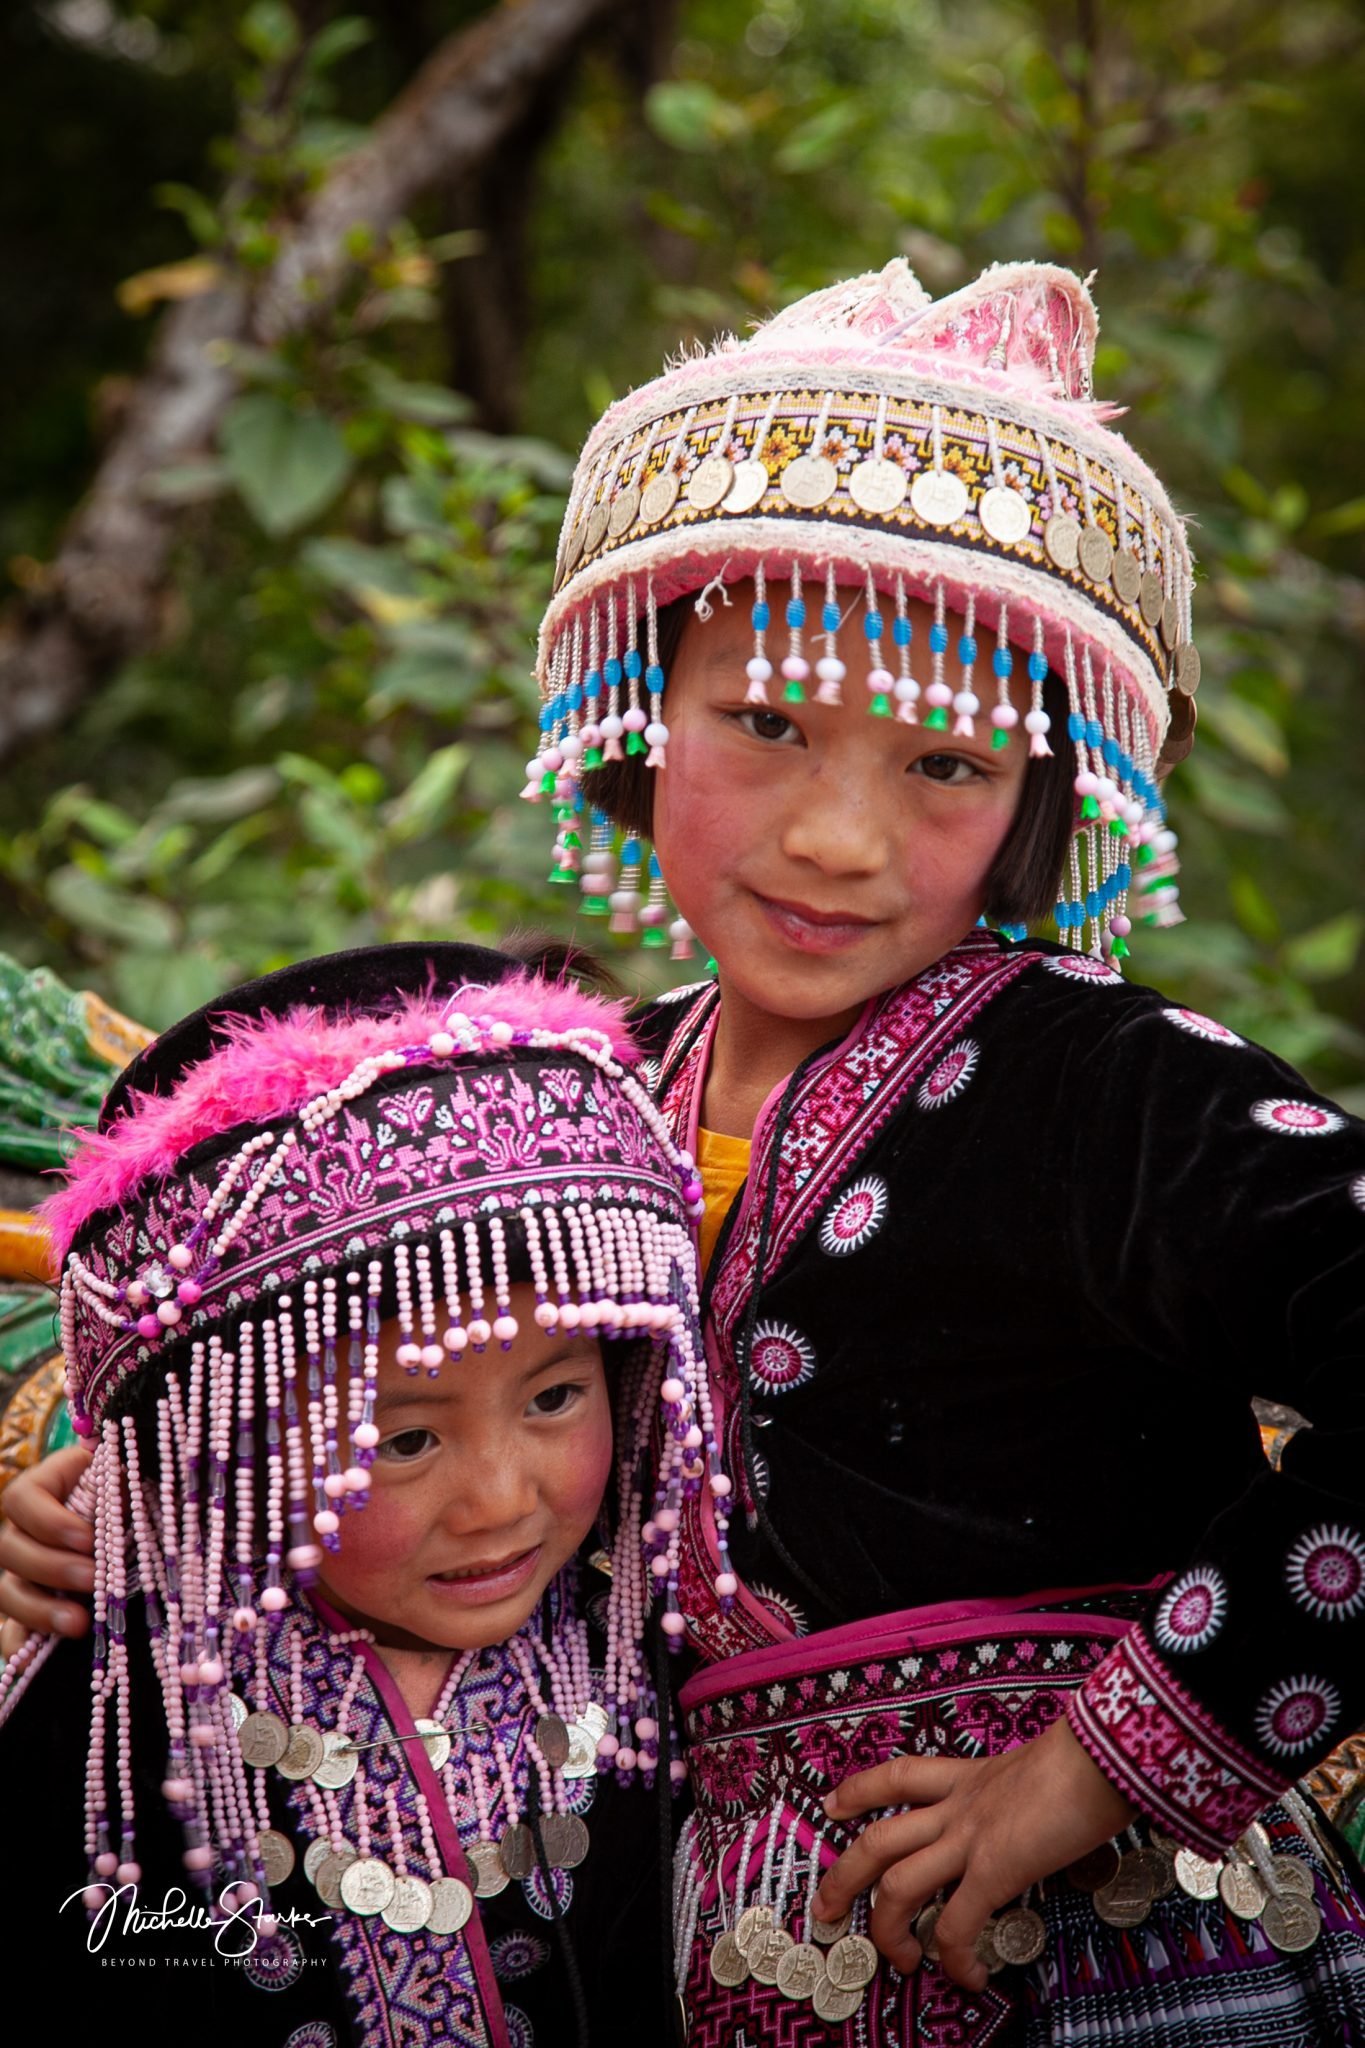 Children from Hill Tribes of Thailand